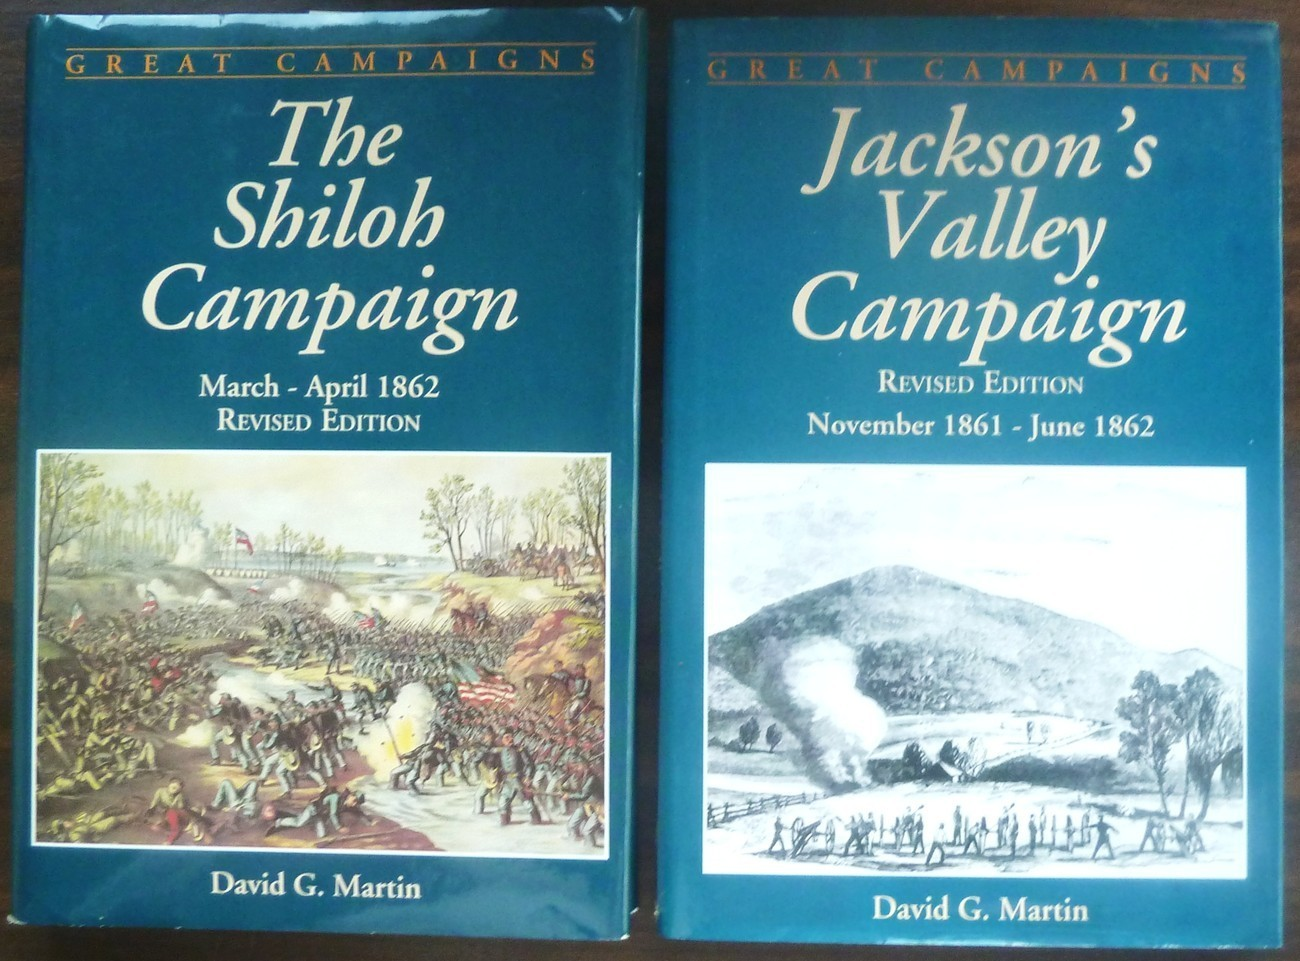 The Shiloh Campaign and Jackson's Valley Campaign by David G. Martin